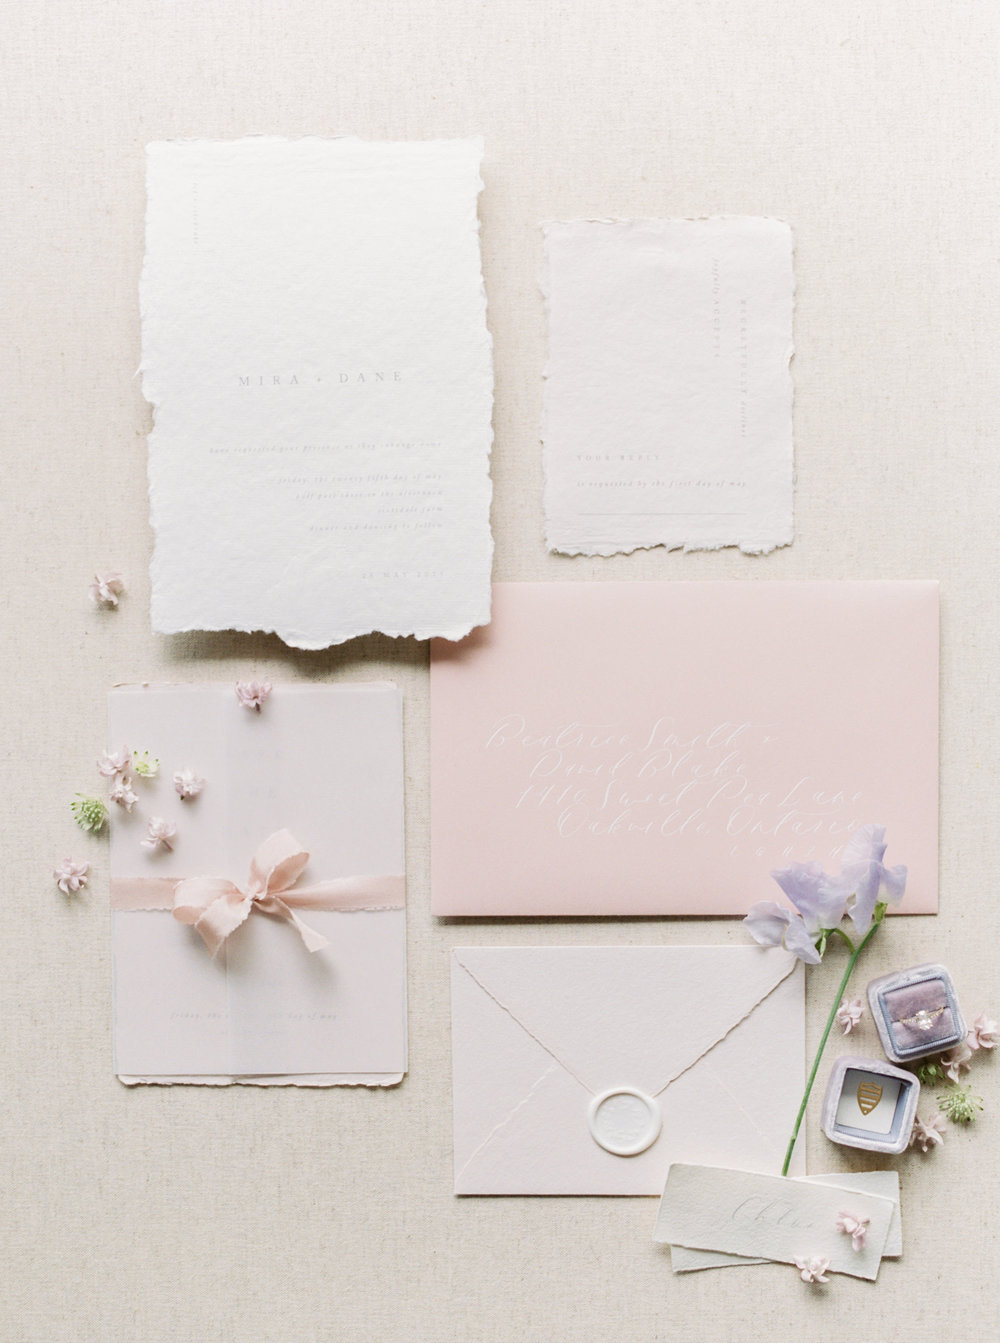 Photo by  Kayla Yestal  | Stationery by  Flourish Calligraphy  | Featured on  Magnolia Rouge